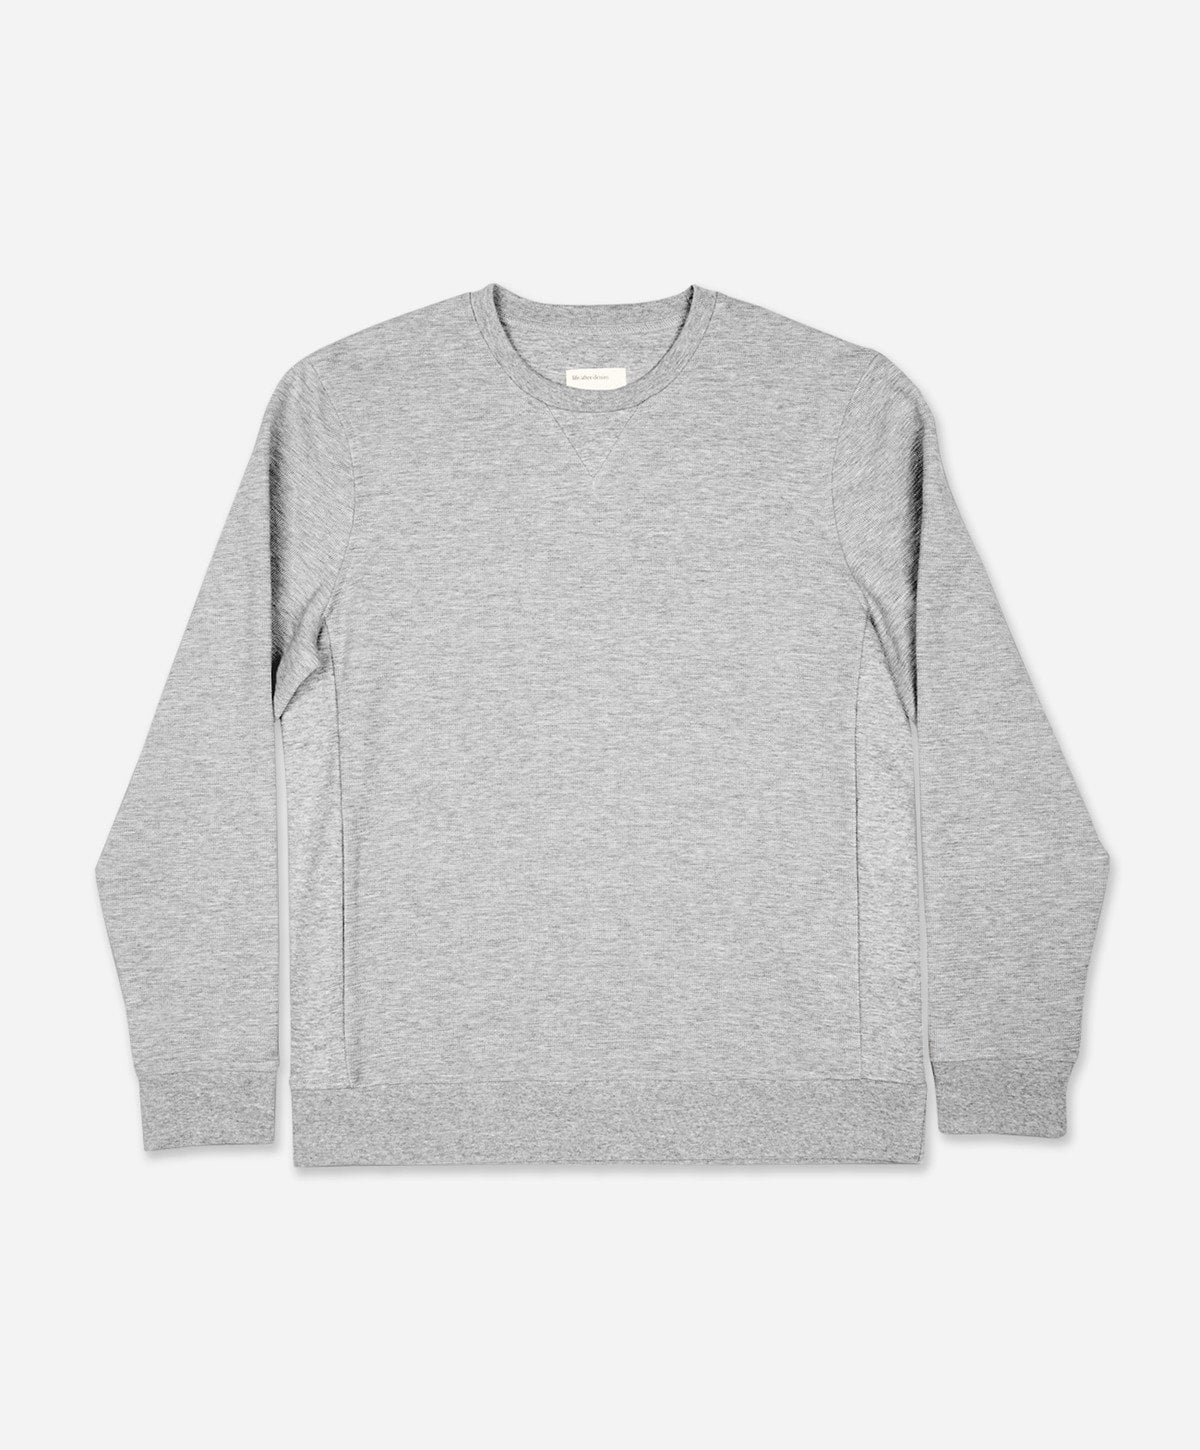 Lacrosse Crew - Heather Grey